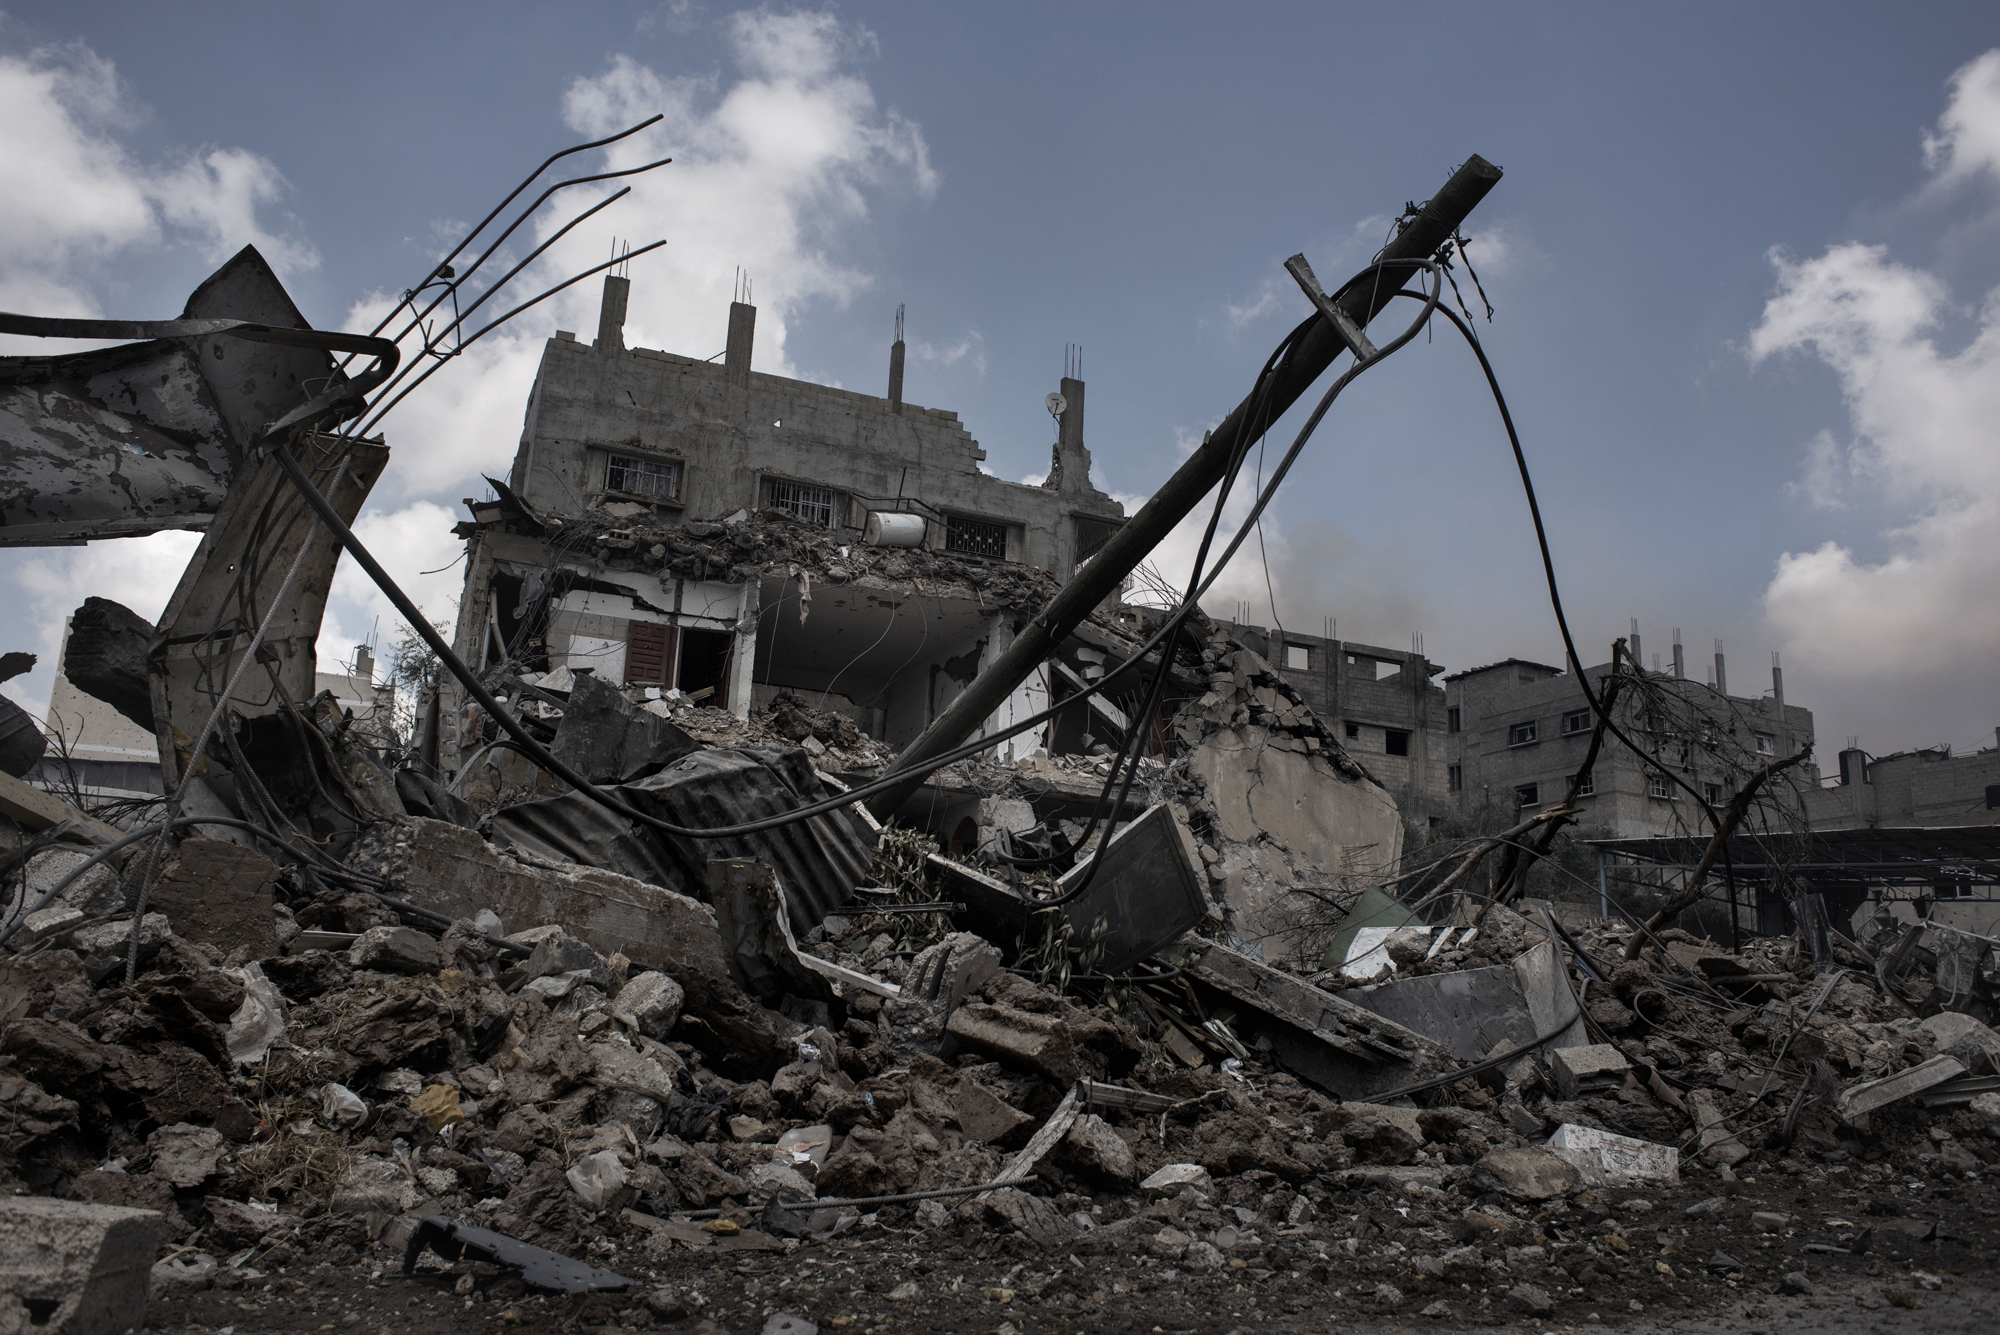 A damaged house in Shujayeh neighborhood in Gaza City, seen during a humanitarian cease-fire, July 20, 2014.